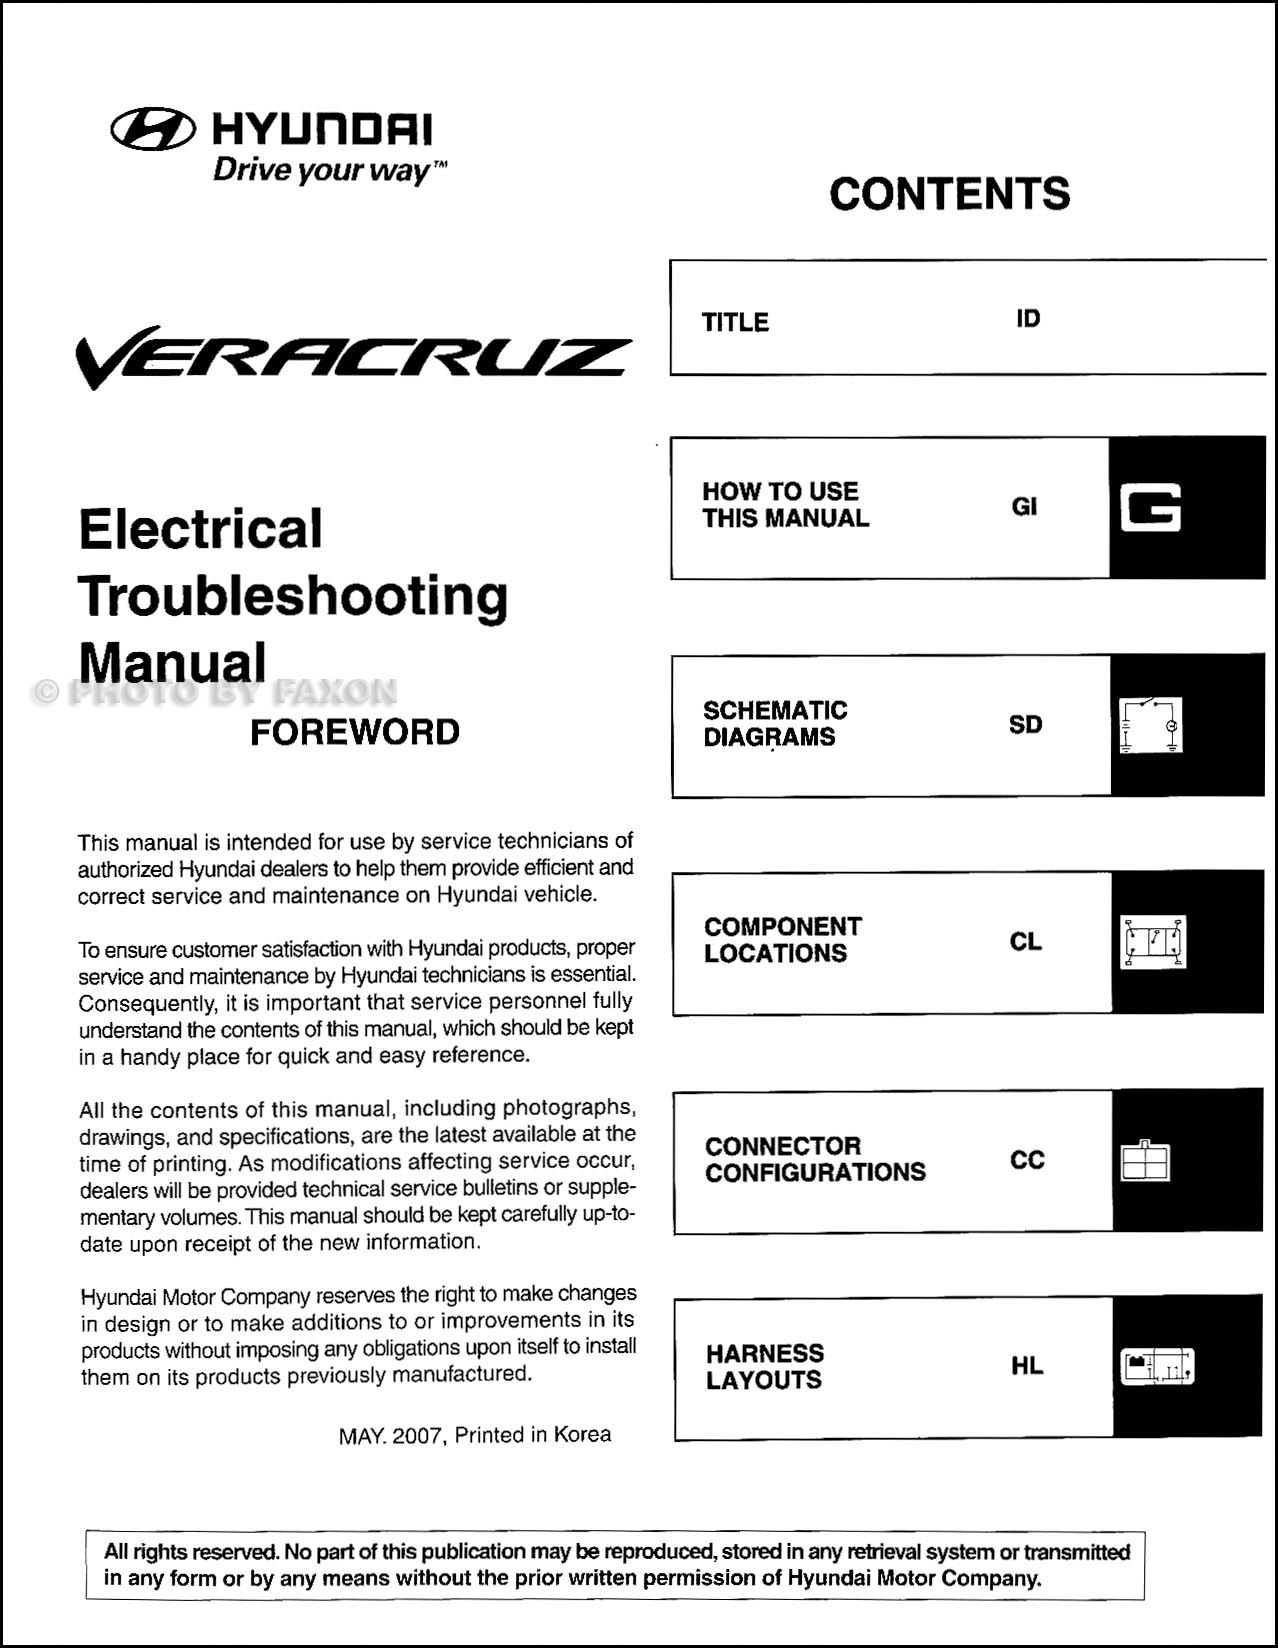 hight resolution of hyundai veracruz wiring diagram 31 wiring diagram images hyundai elantra wiring diagram hyundai stereo wiring diagram